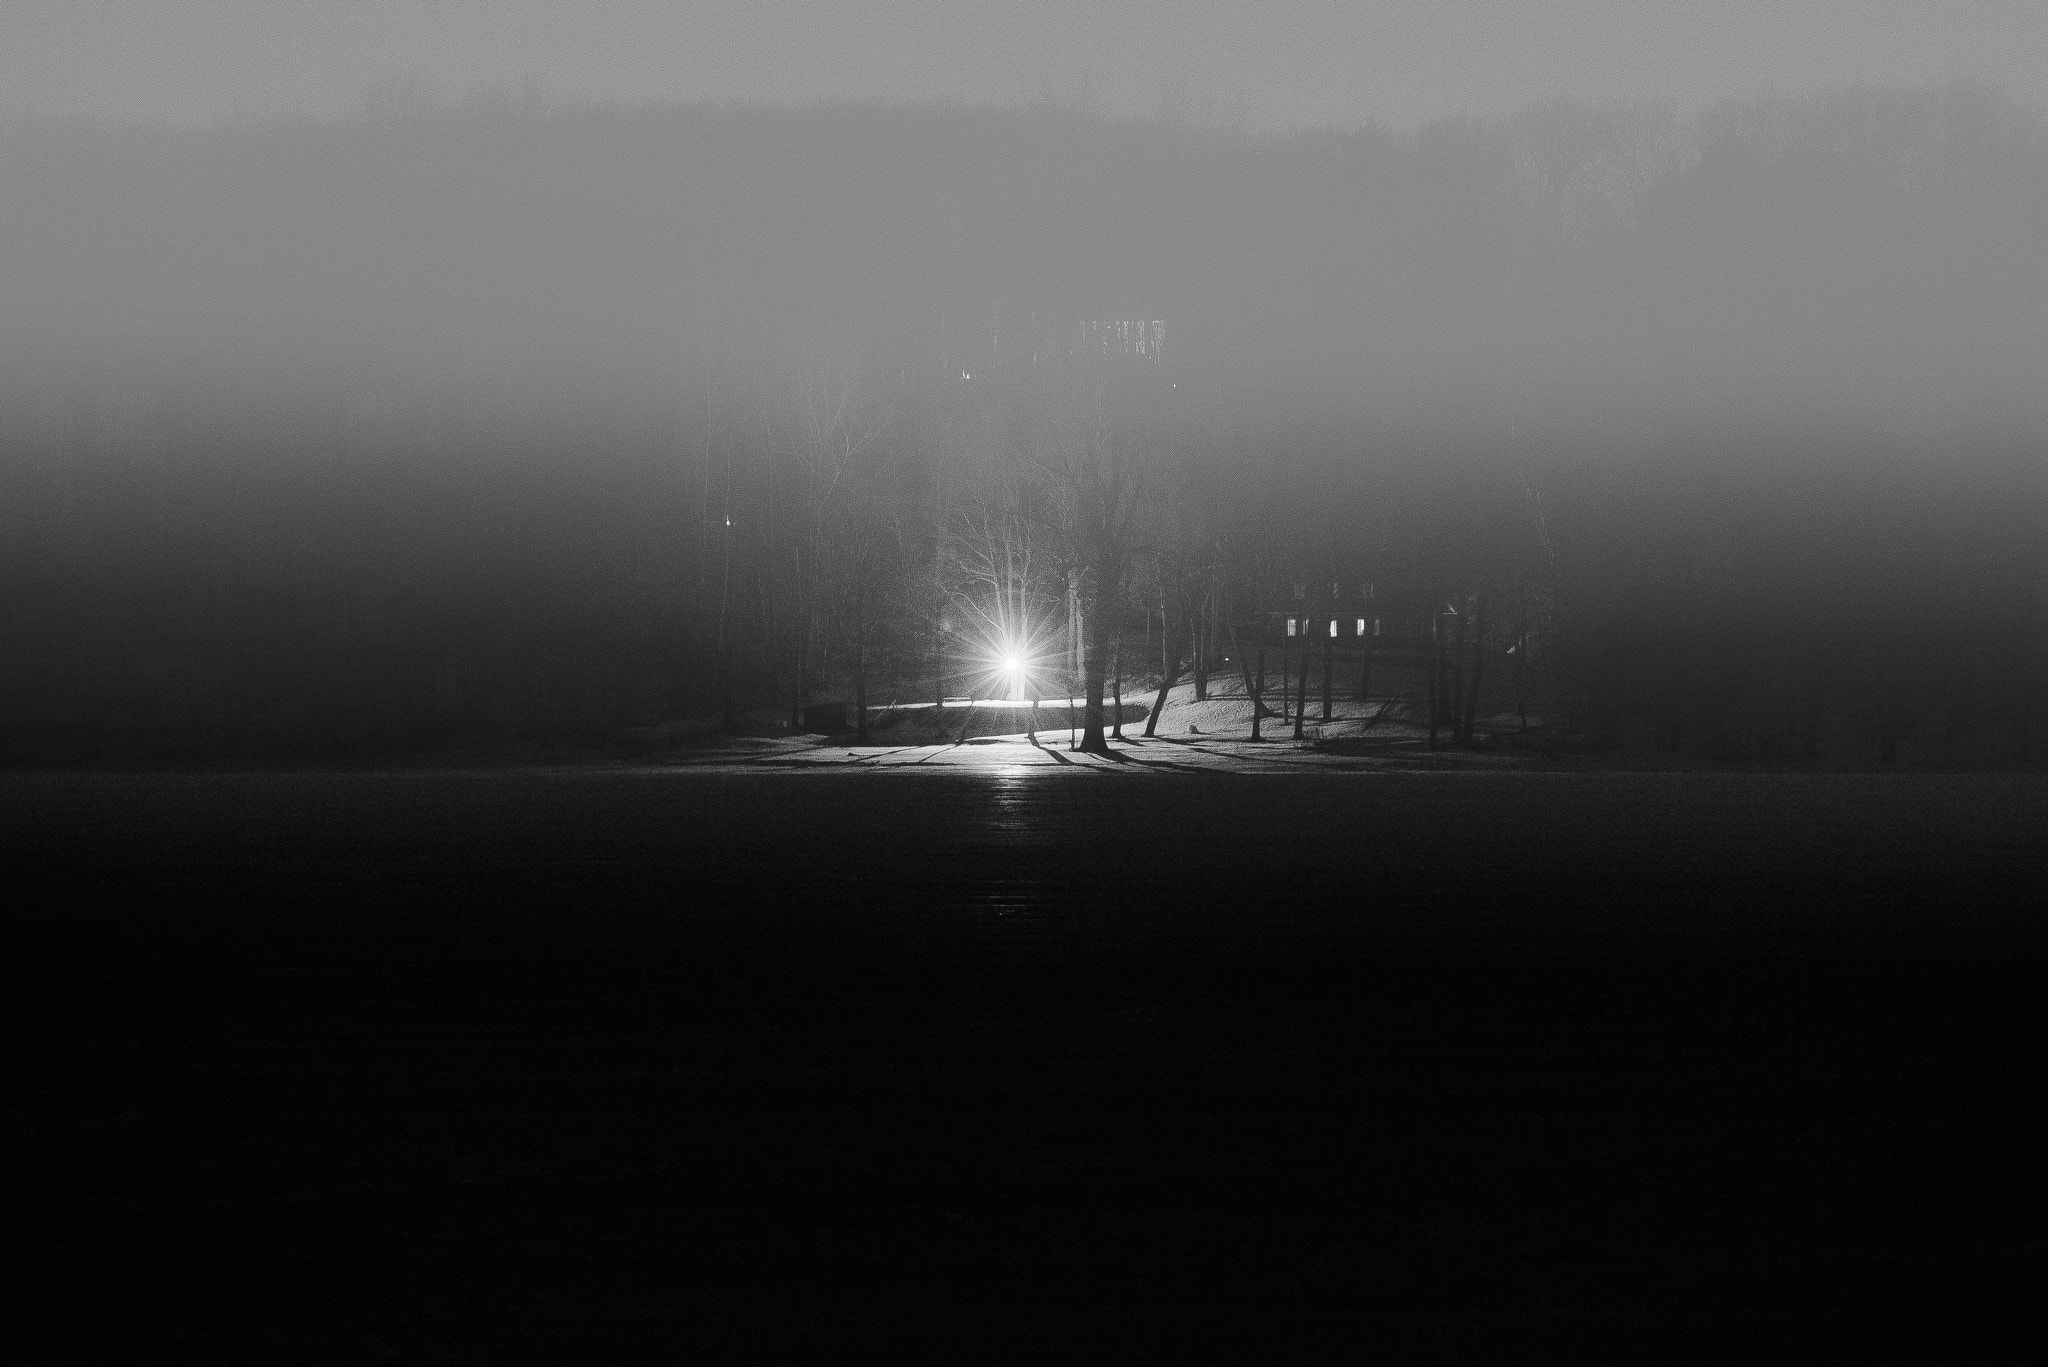 Photograph Alone in the Dark by Chris Lockwood on 500px